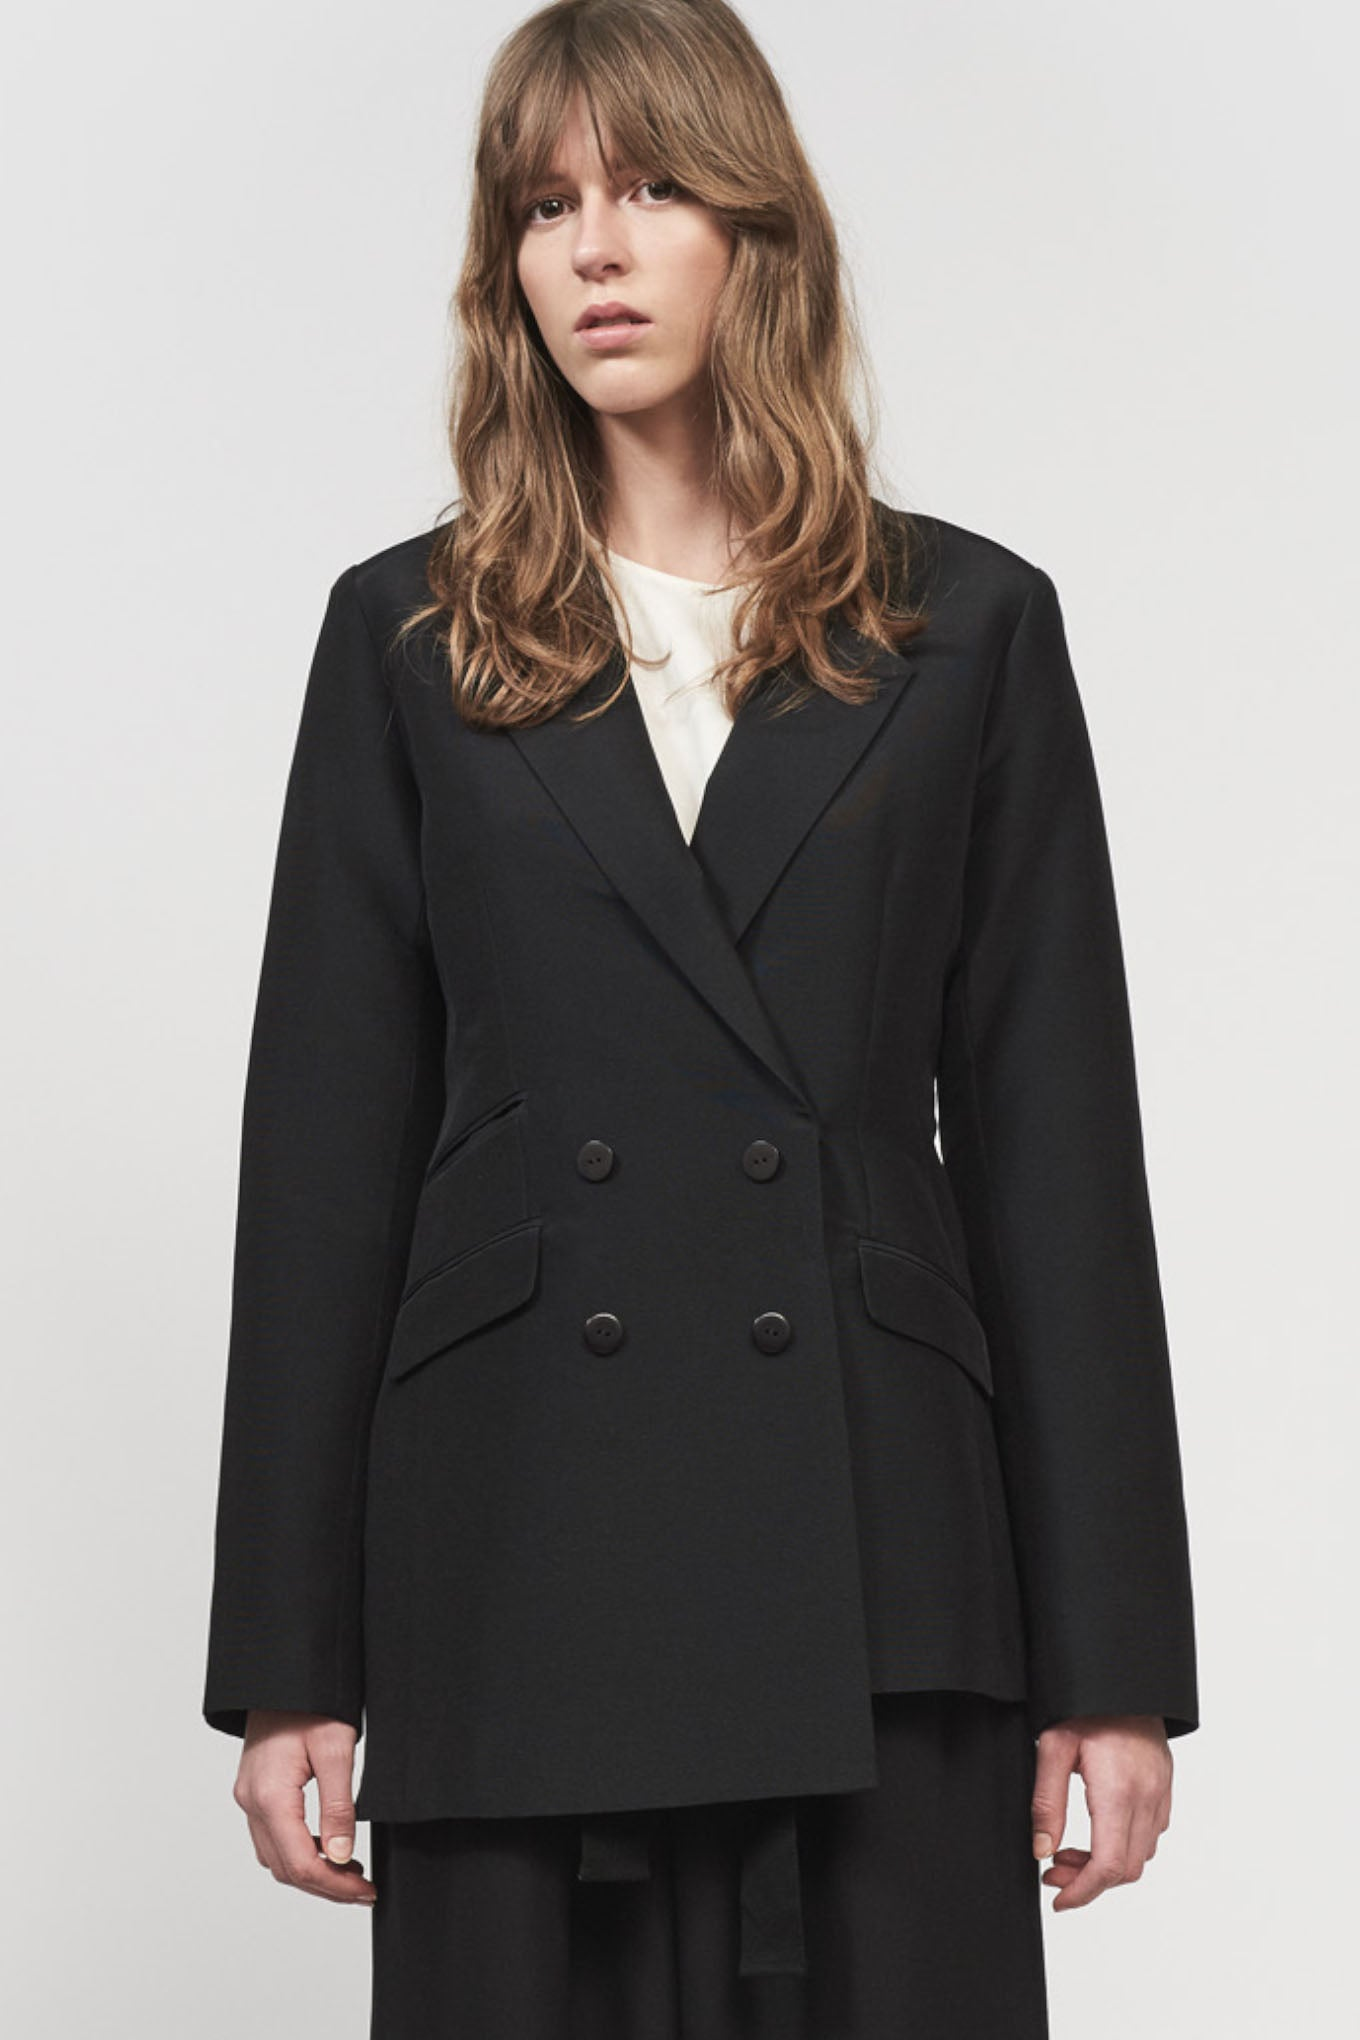 BRIGHTON BLAZER - BLACK - SILK/COTTON